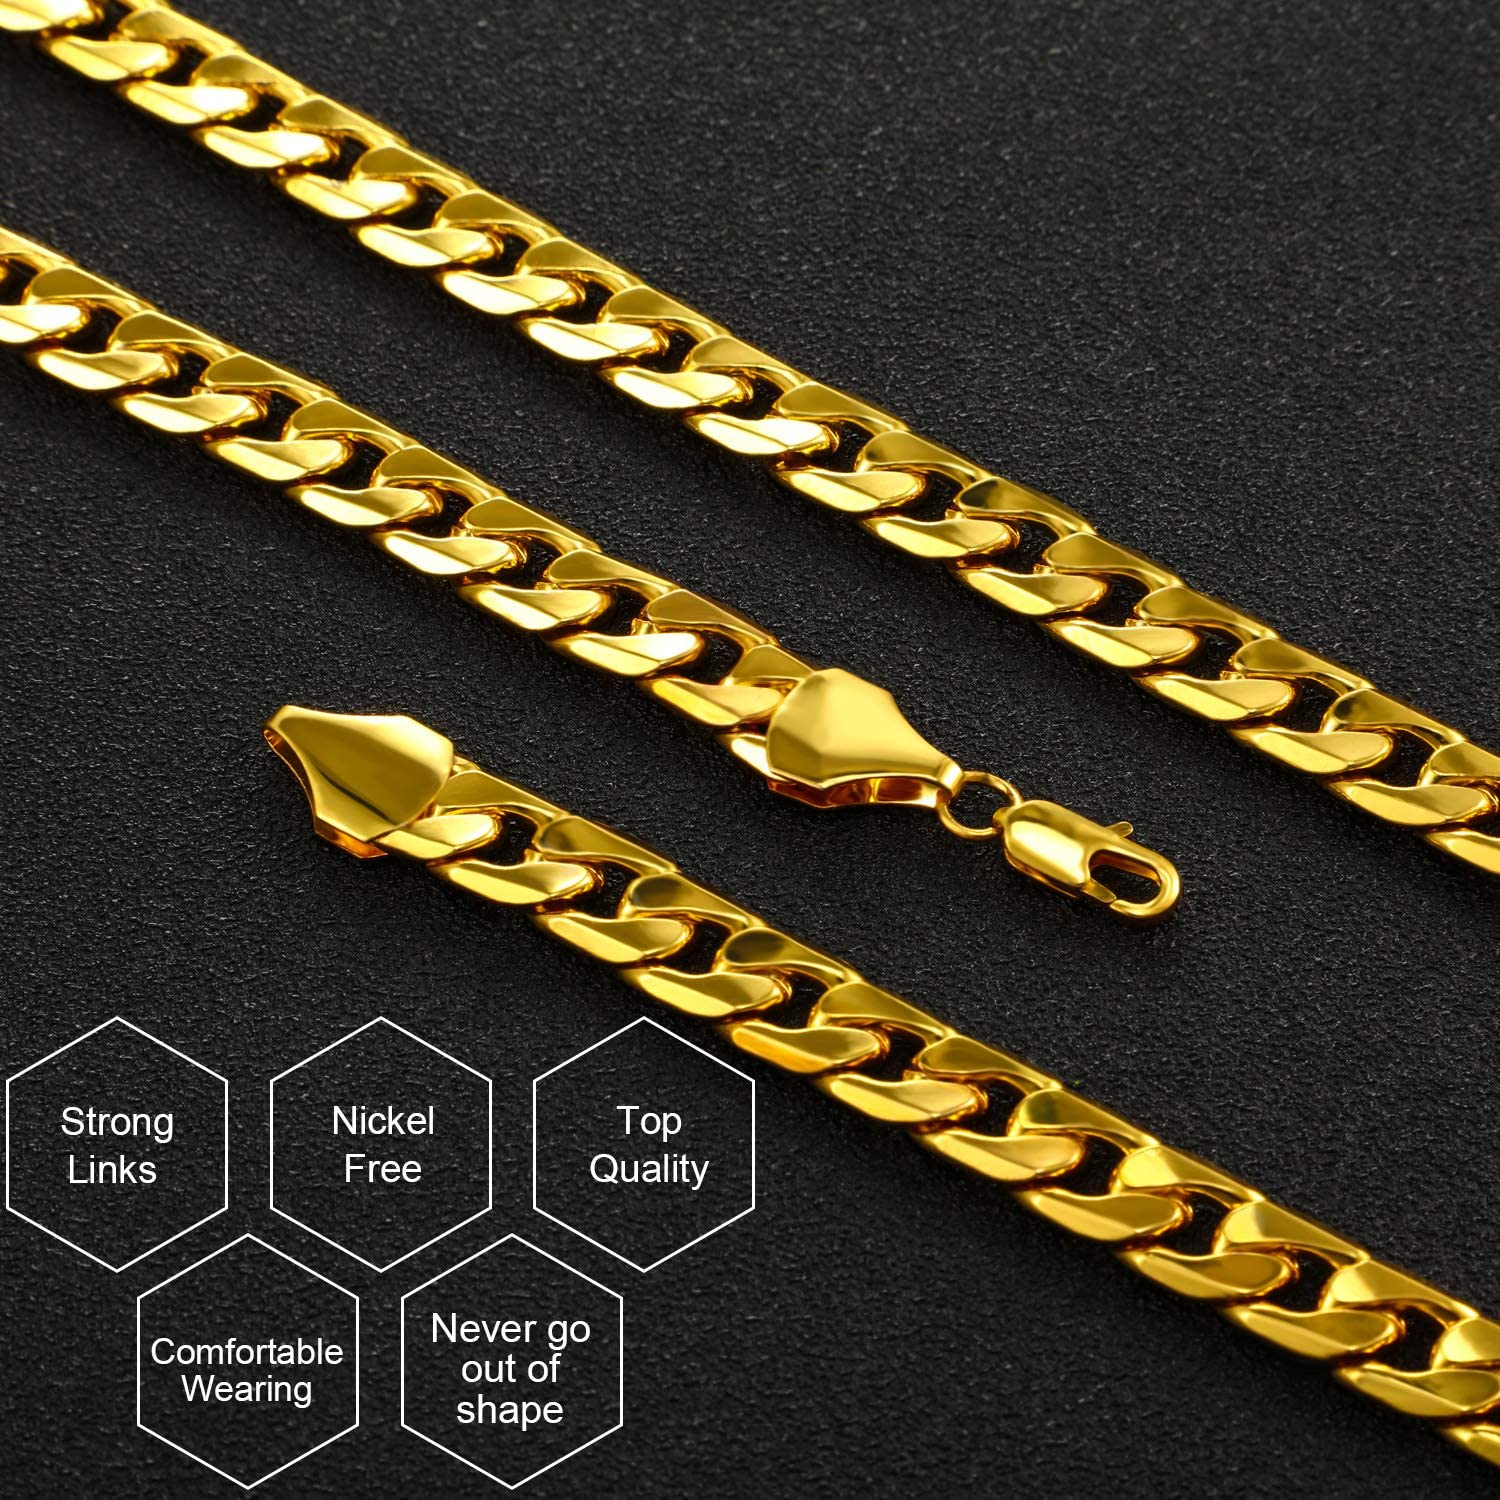 4 Pieces Hip Hop Rapper Faux Gold Chain Necklace Chunky Necklace Stainless Steel Chain for 80's, 90's Punk Style Hip Hop Chain Necklace, 8 MM 24 Inch Long